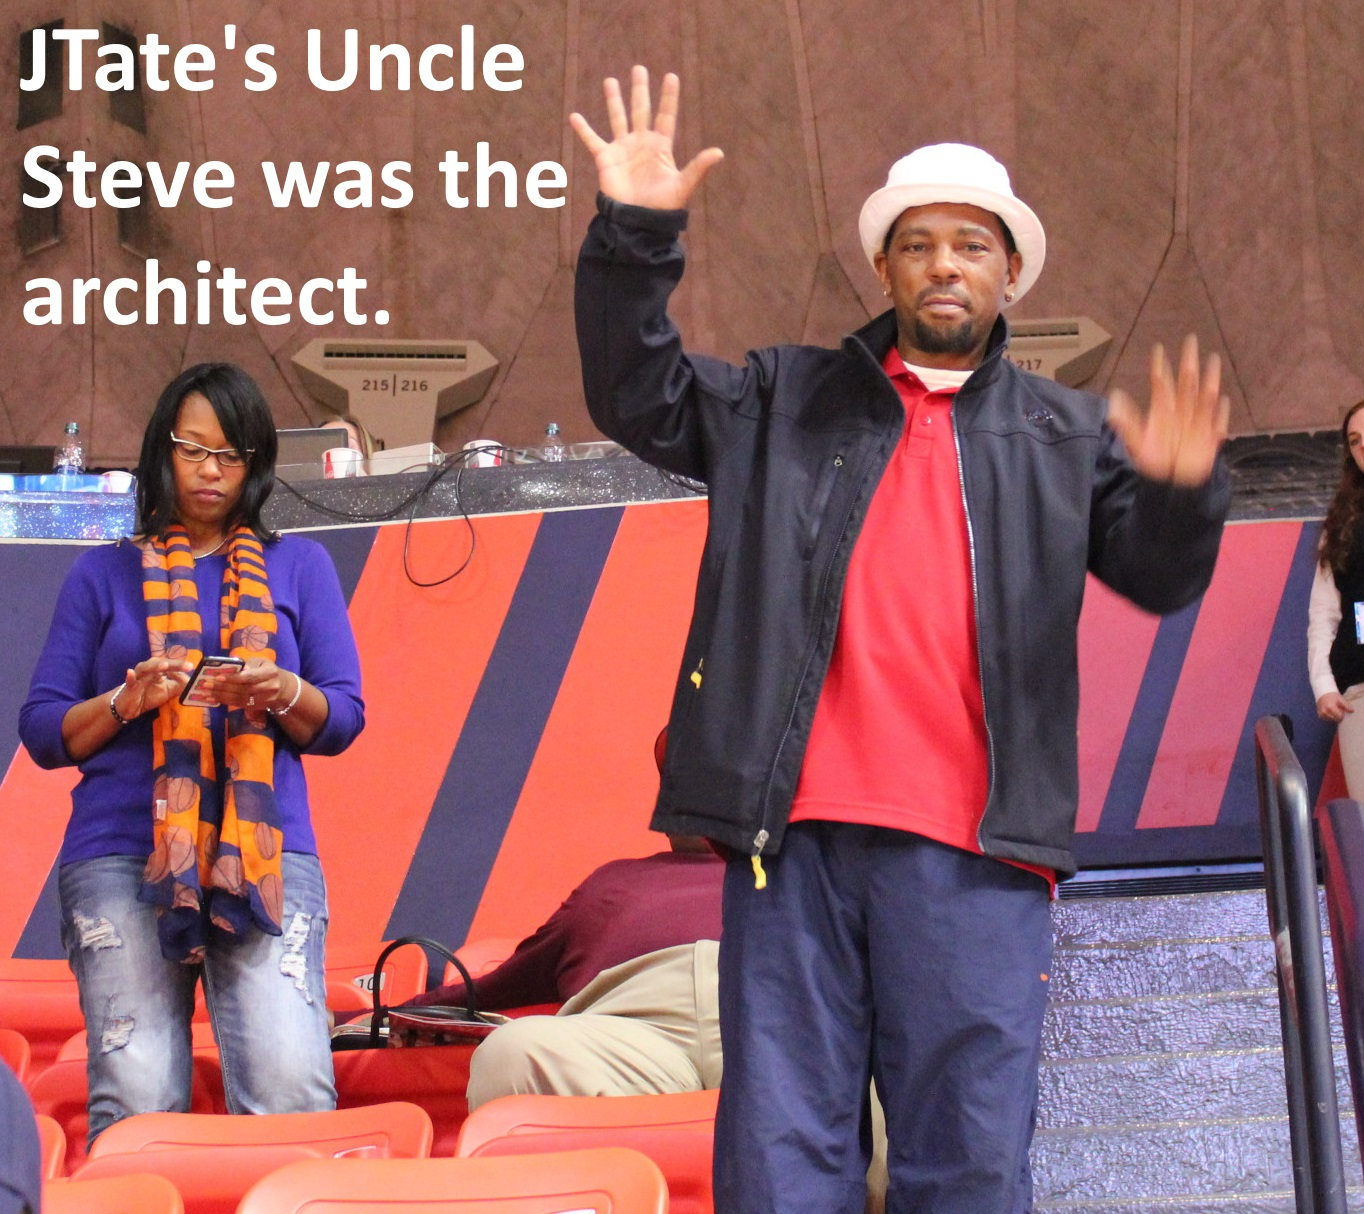 steven-johnson-jaylon-tates-uncle-the-architect